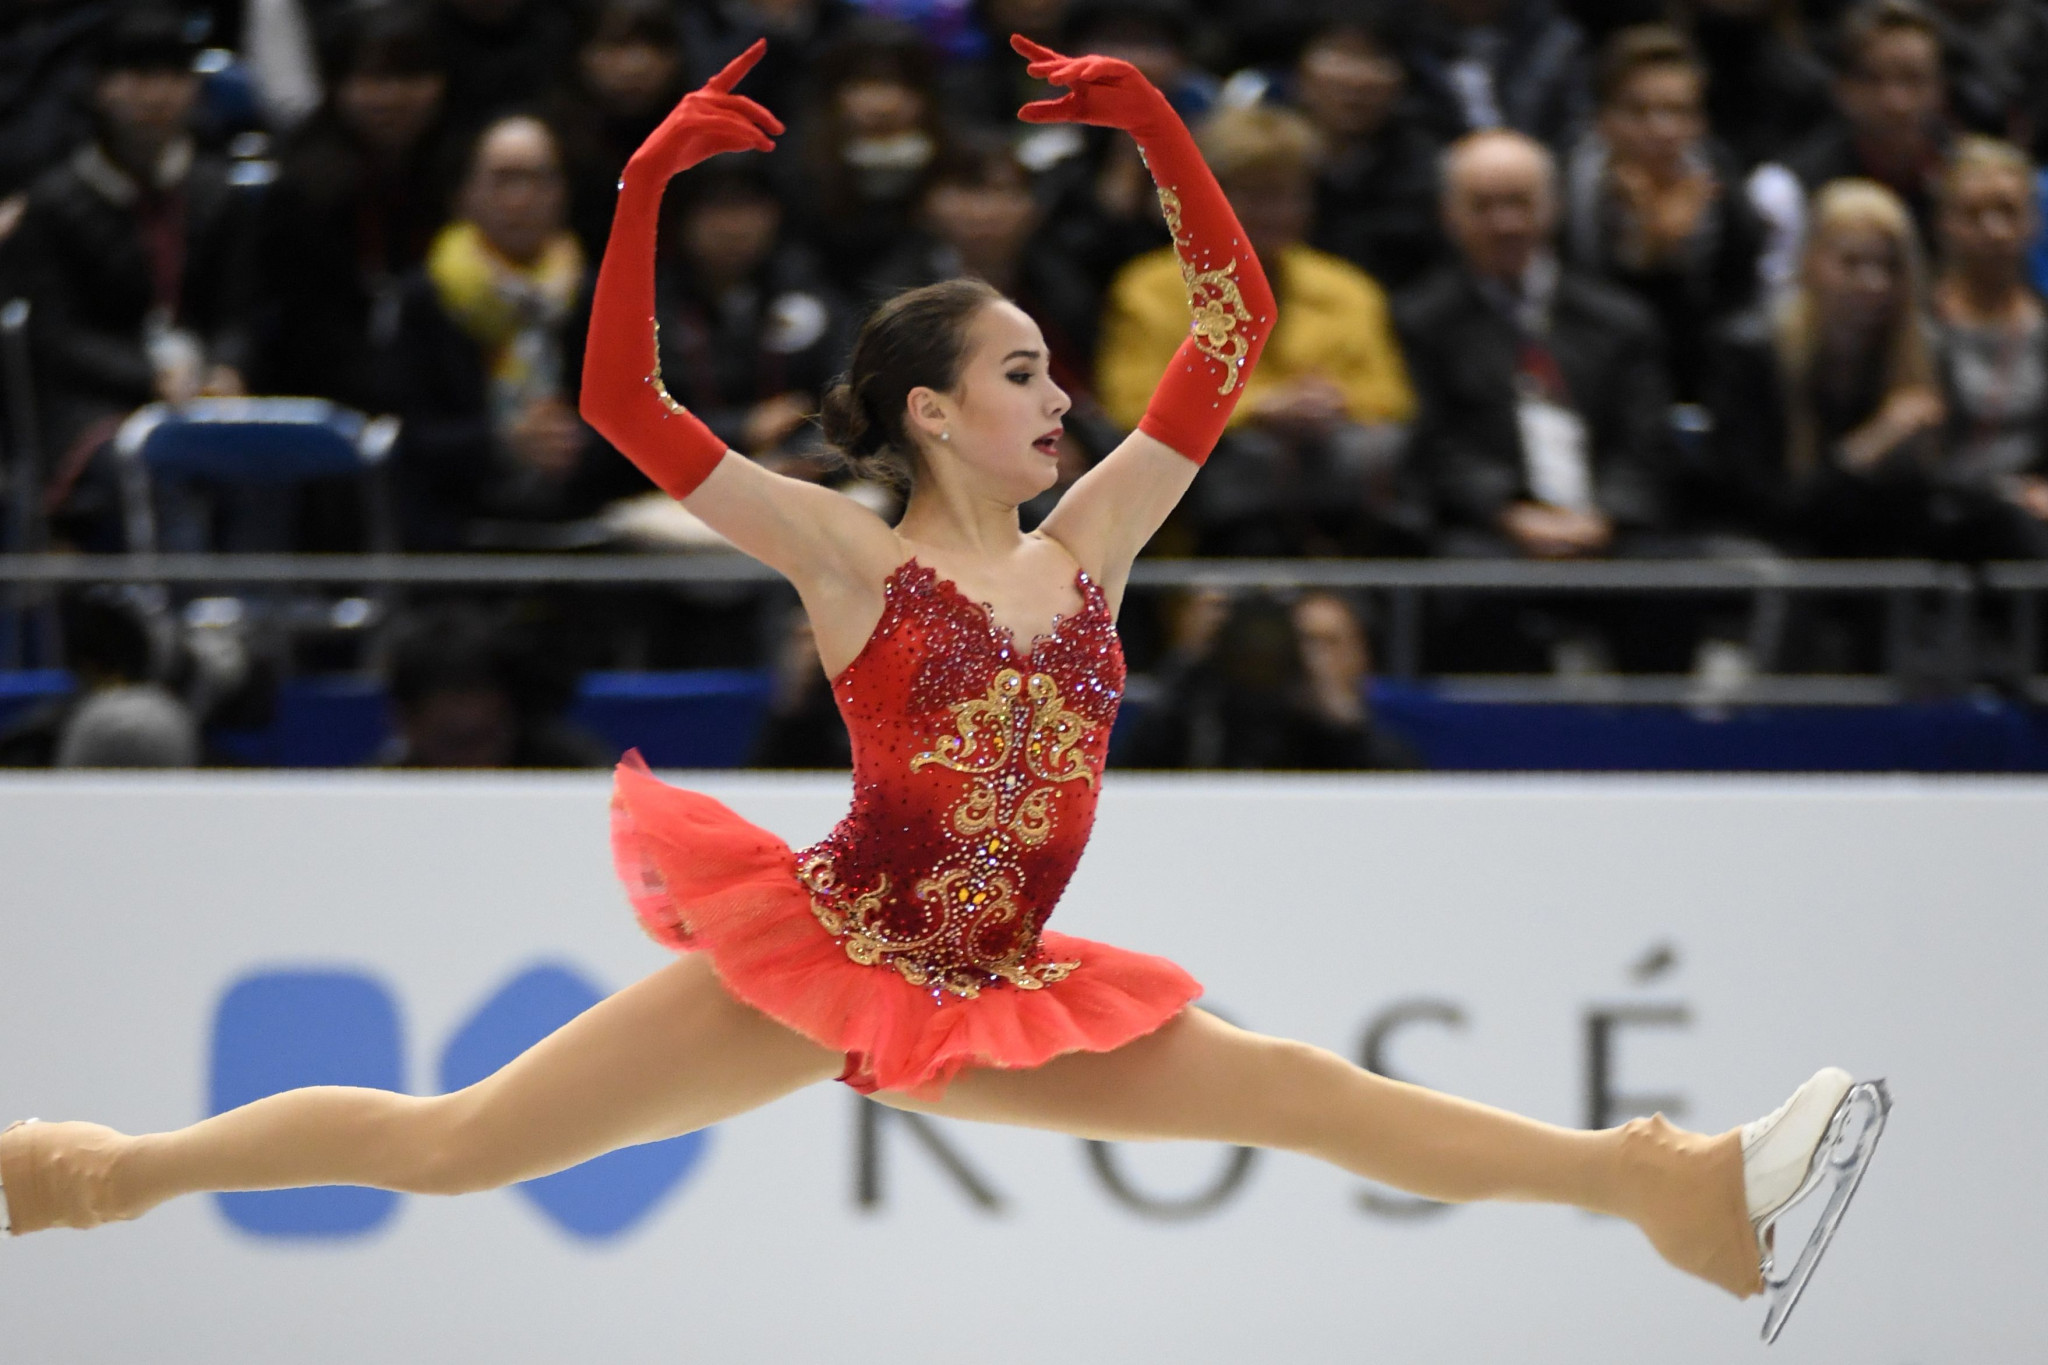 Alina Zagitova won the ladies singles title in Nagoya ©Getty Images